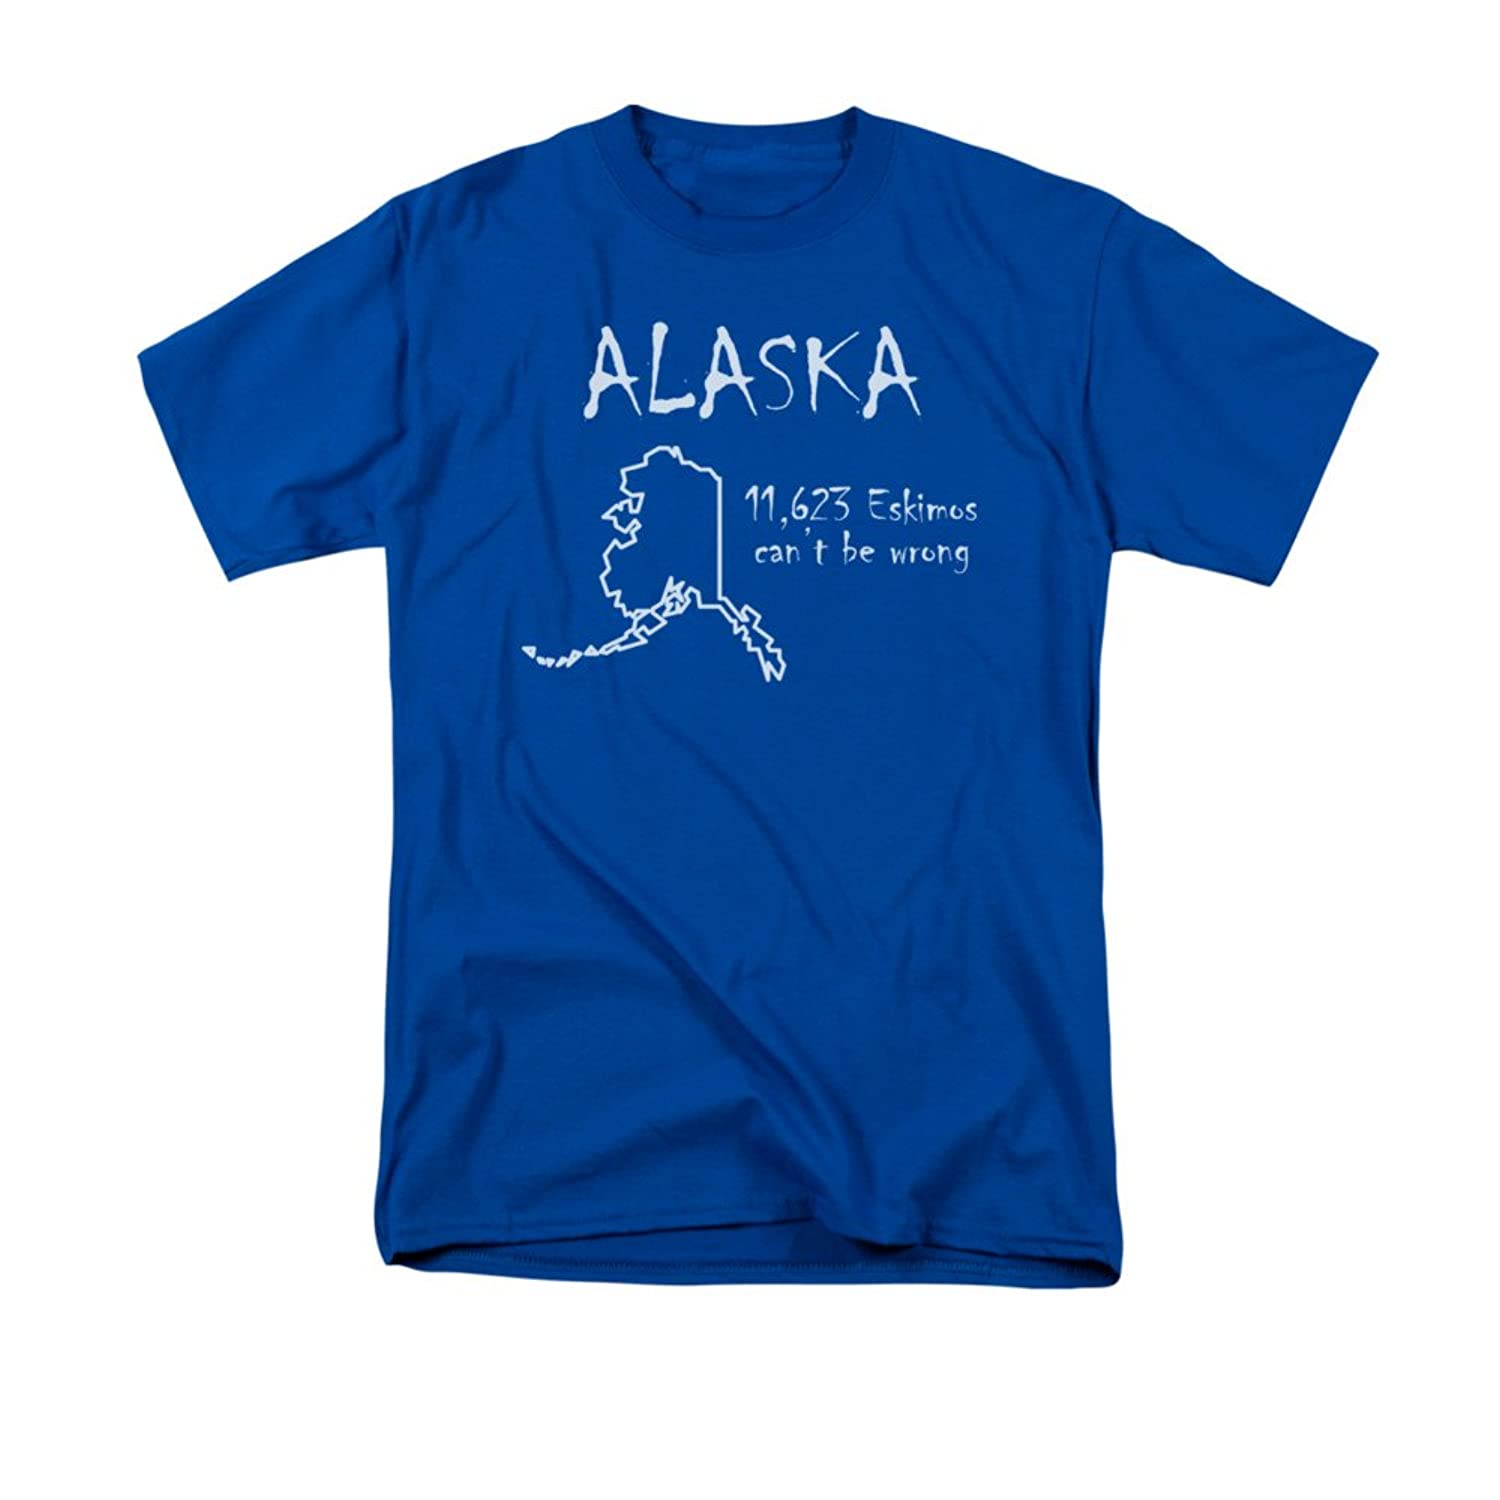 Alaska 11,623 Eskimos Can't Be Wrong Funny State Saying Adult T-Shirt